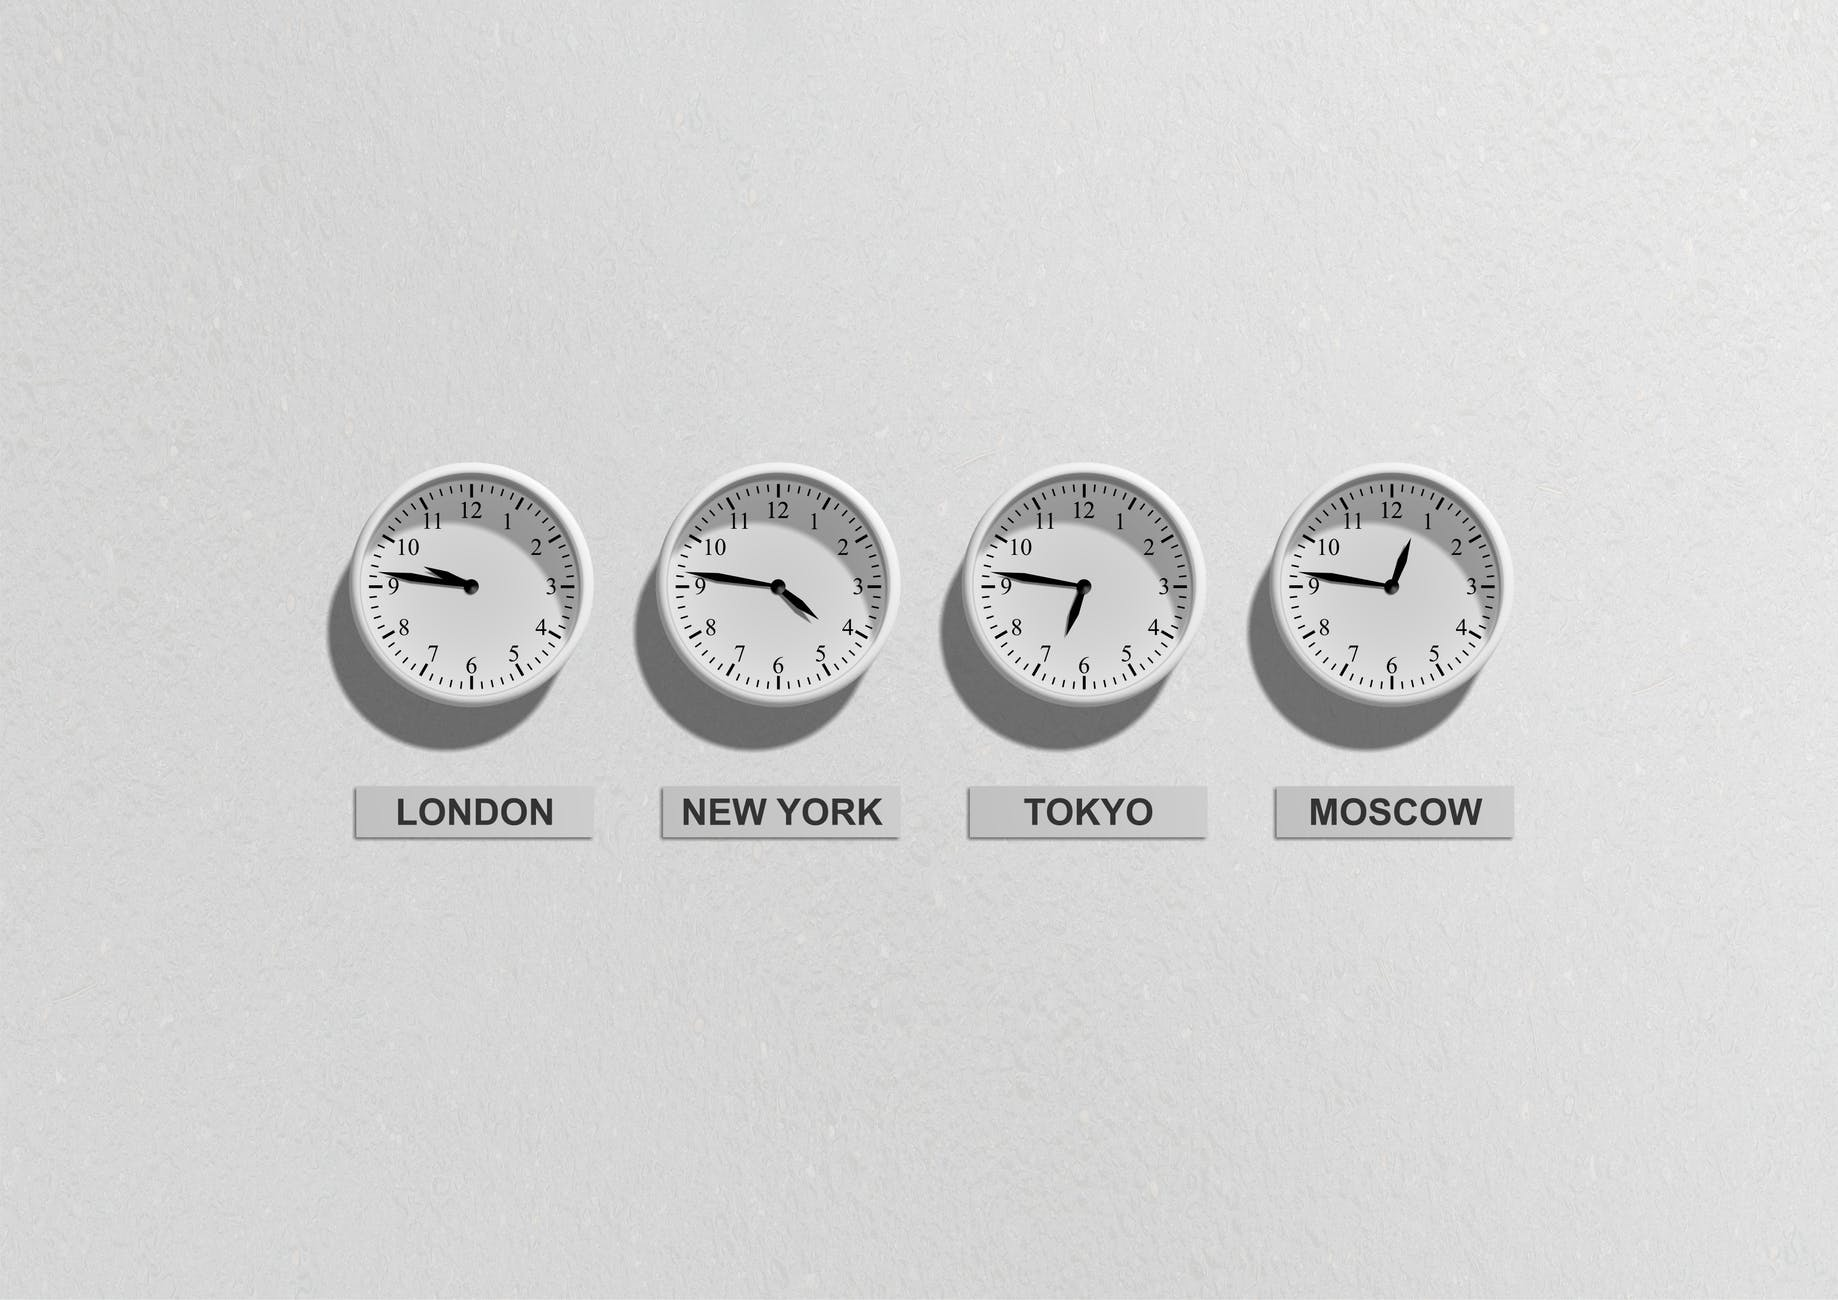 Clocks showing different times around the world